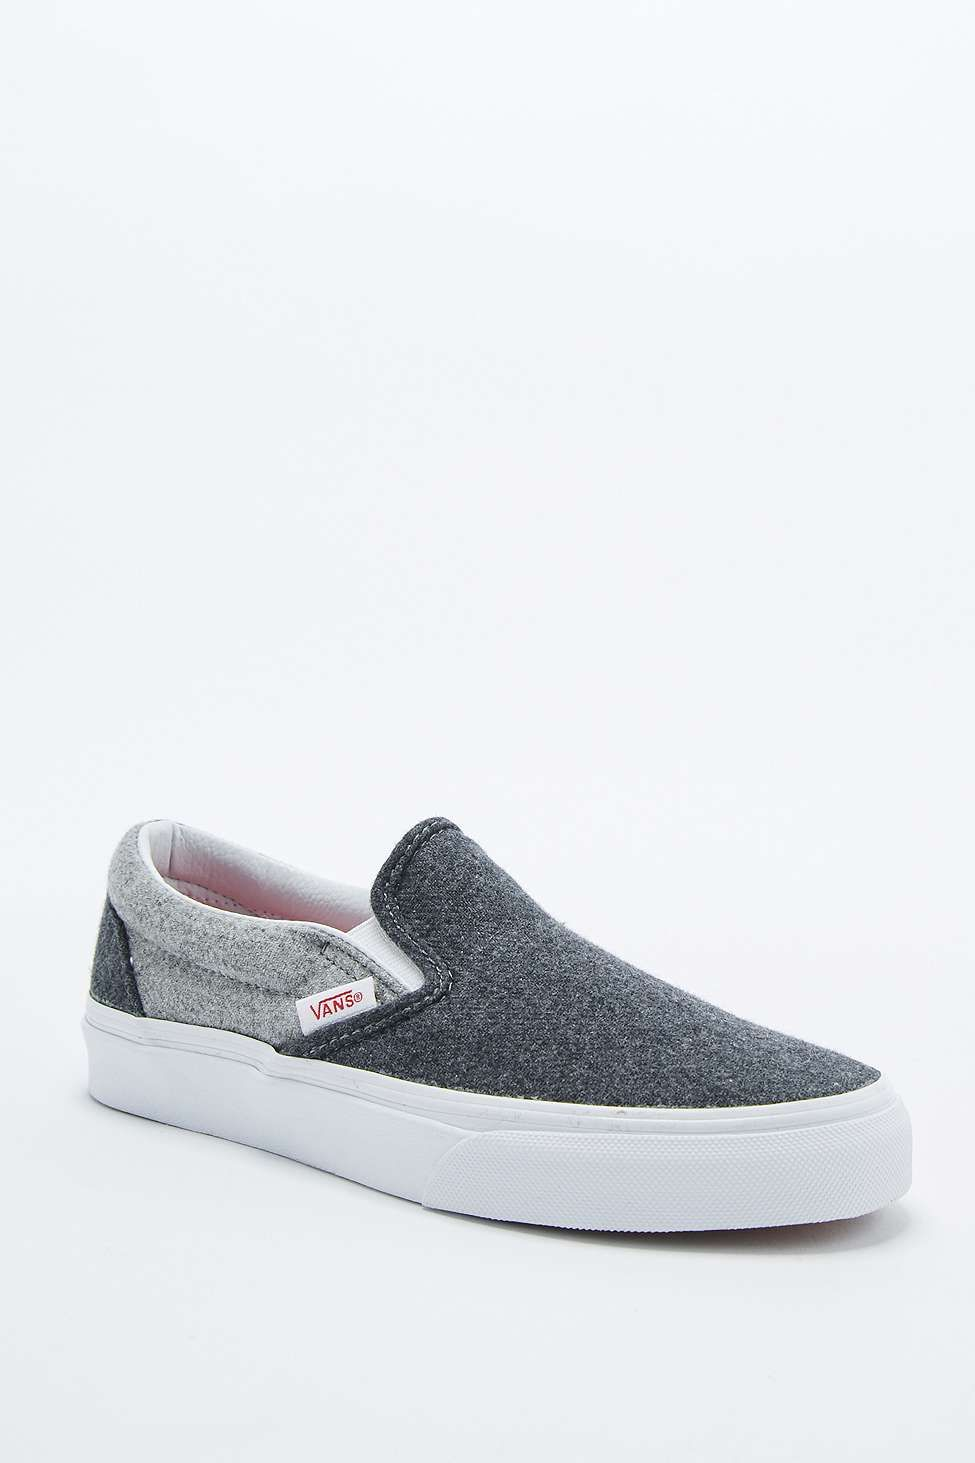 c35a343b250e Vans Slip-On Classic Grey Flannel Trainers Vans Slip On Shoes